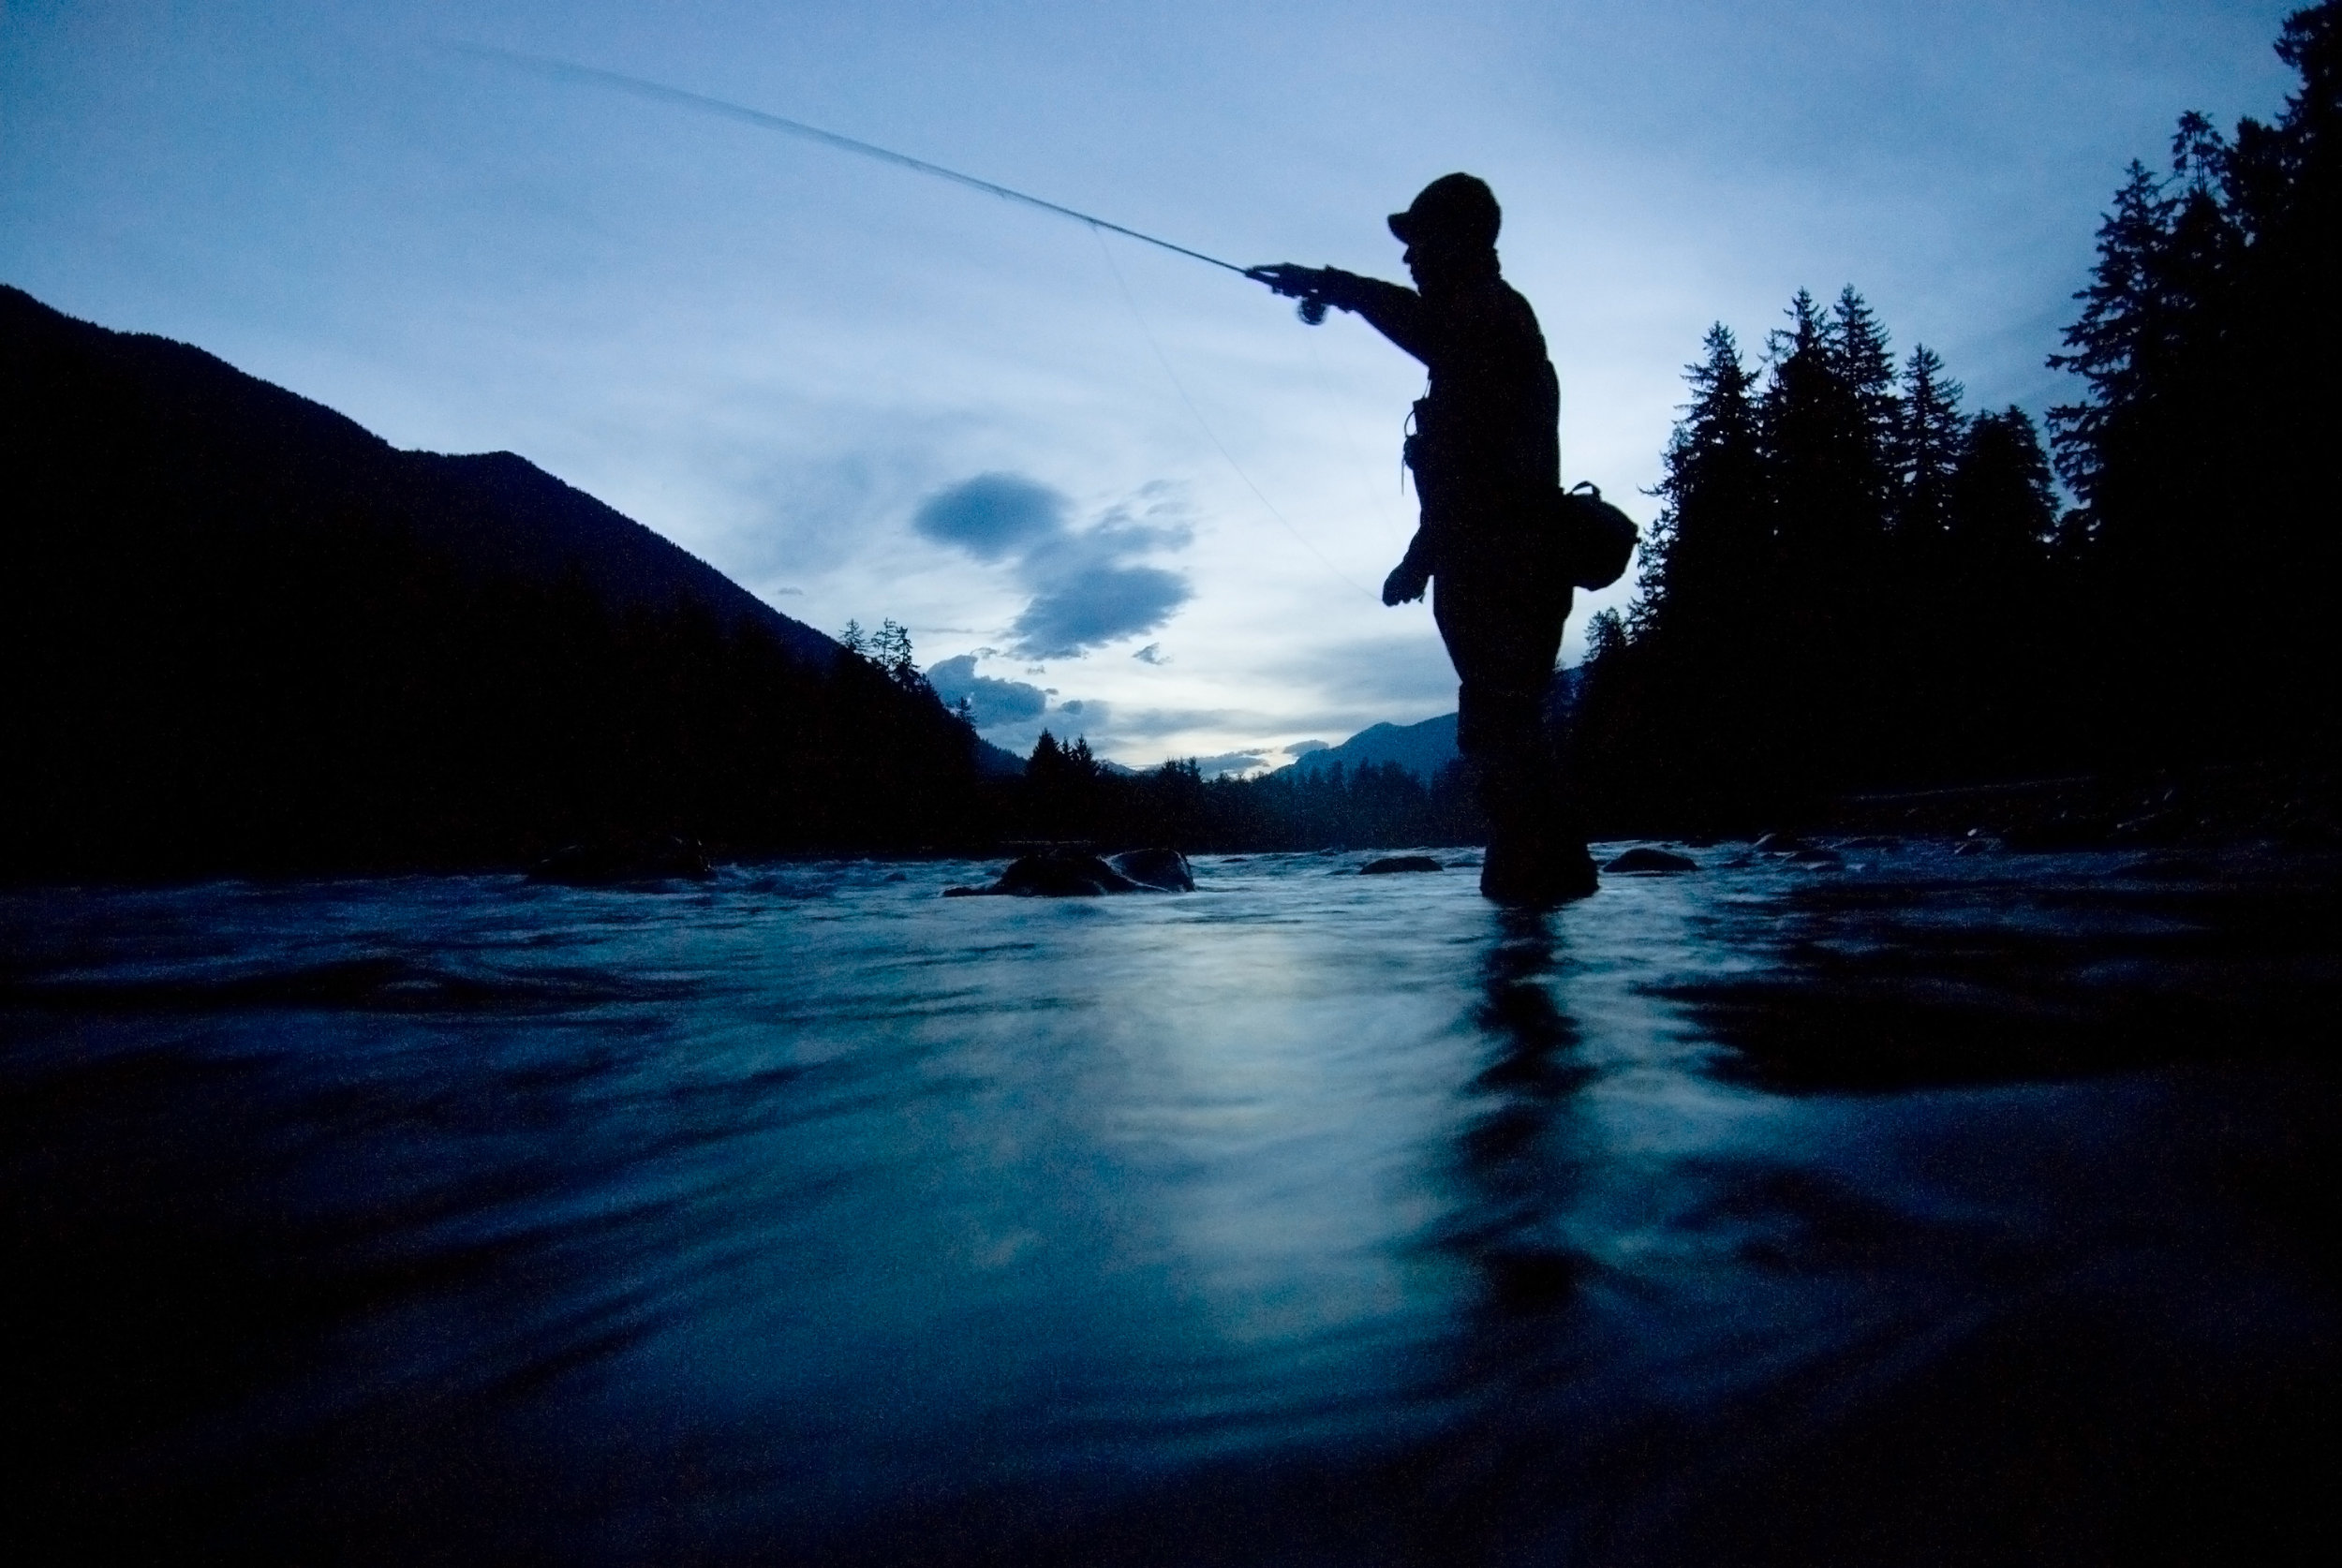 Flyfishing at dawn for steelhead on the Hoh River in the Olympic Peninsula of Washington (near Forks). Photo by Keith Lazelle.